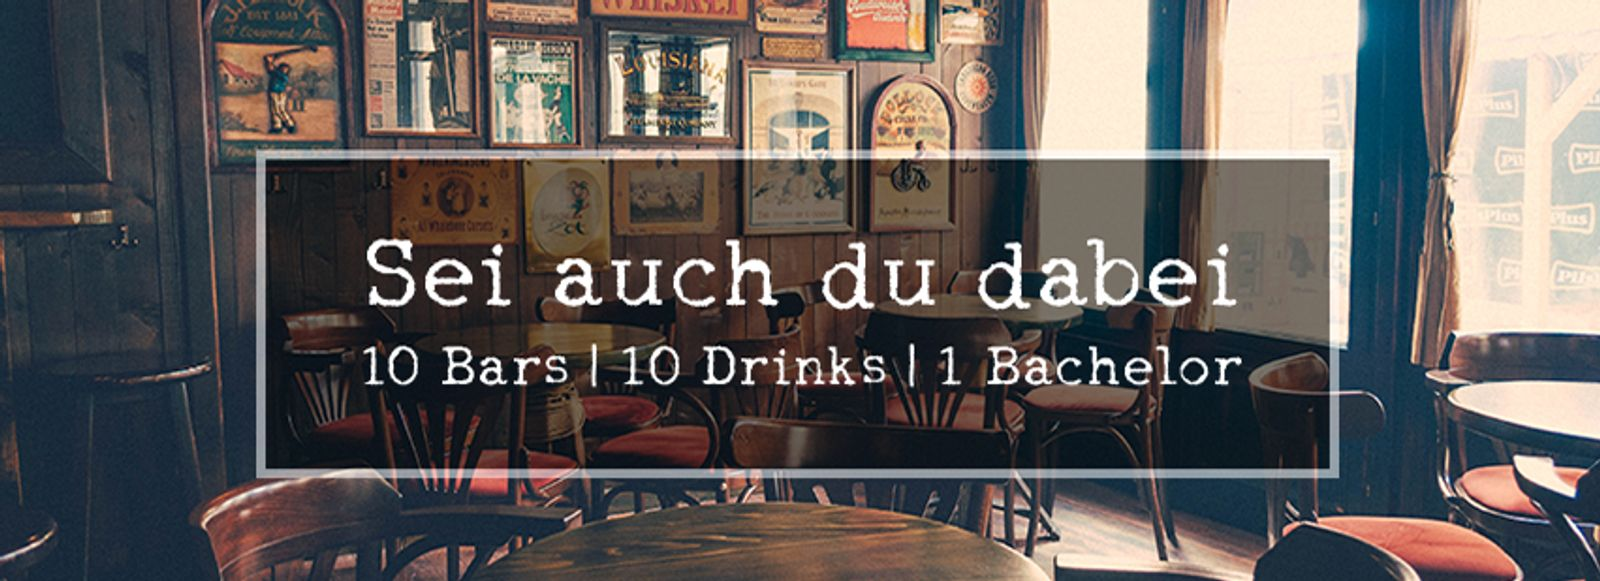 Bar Bachelor Frankfurt